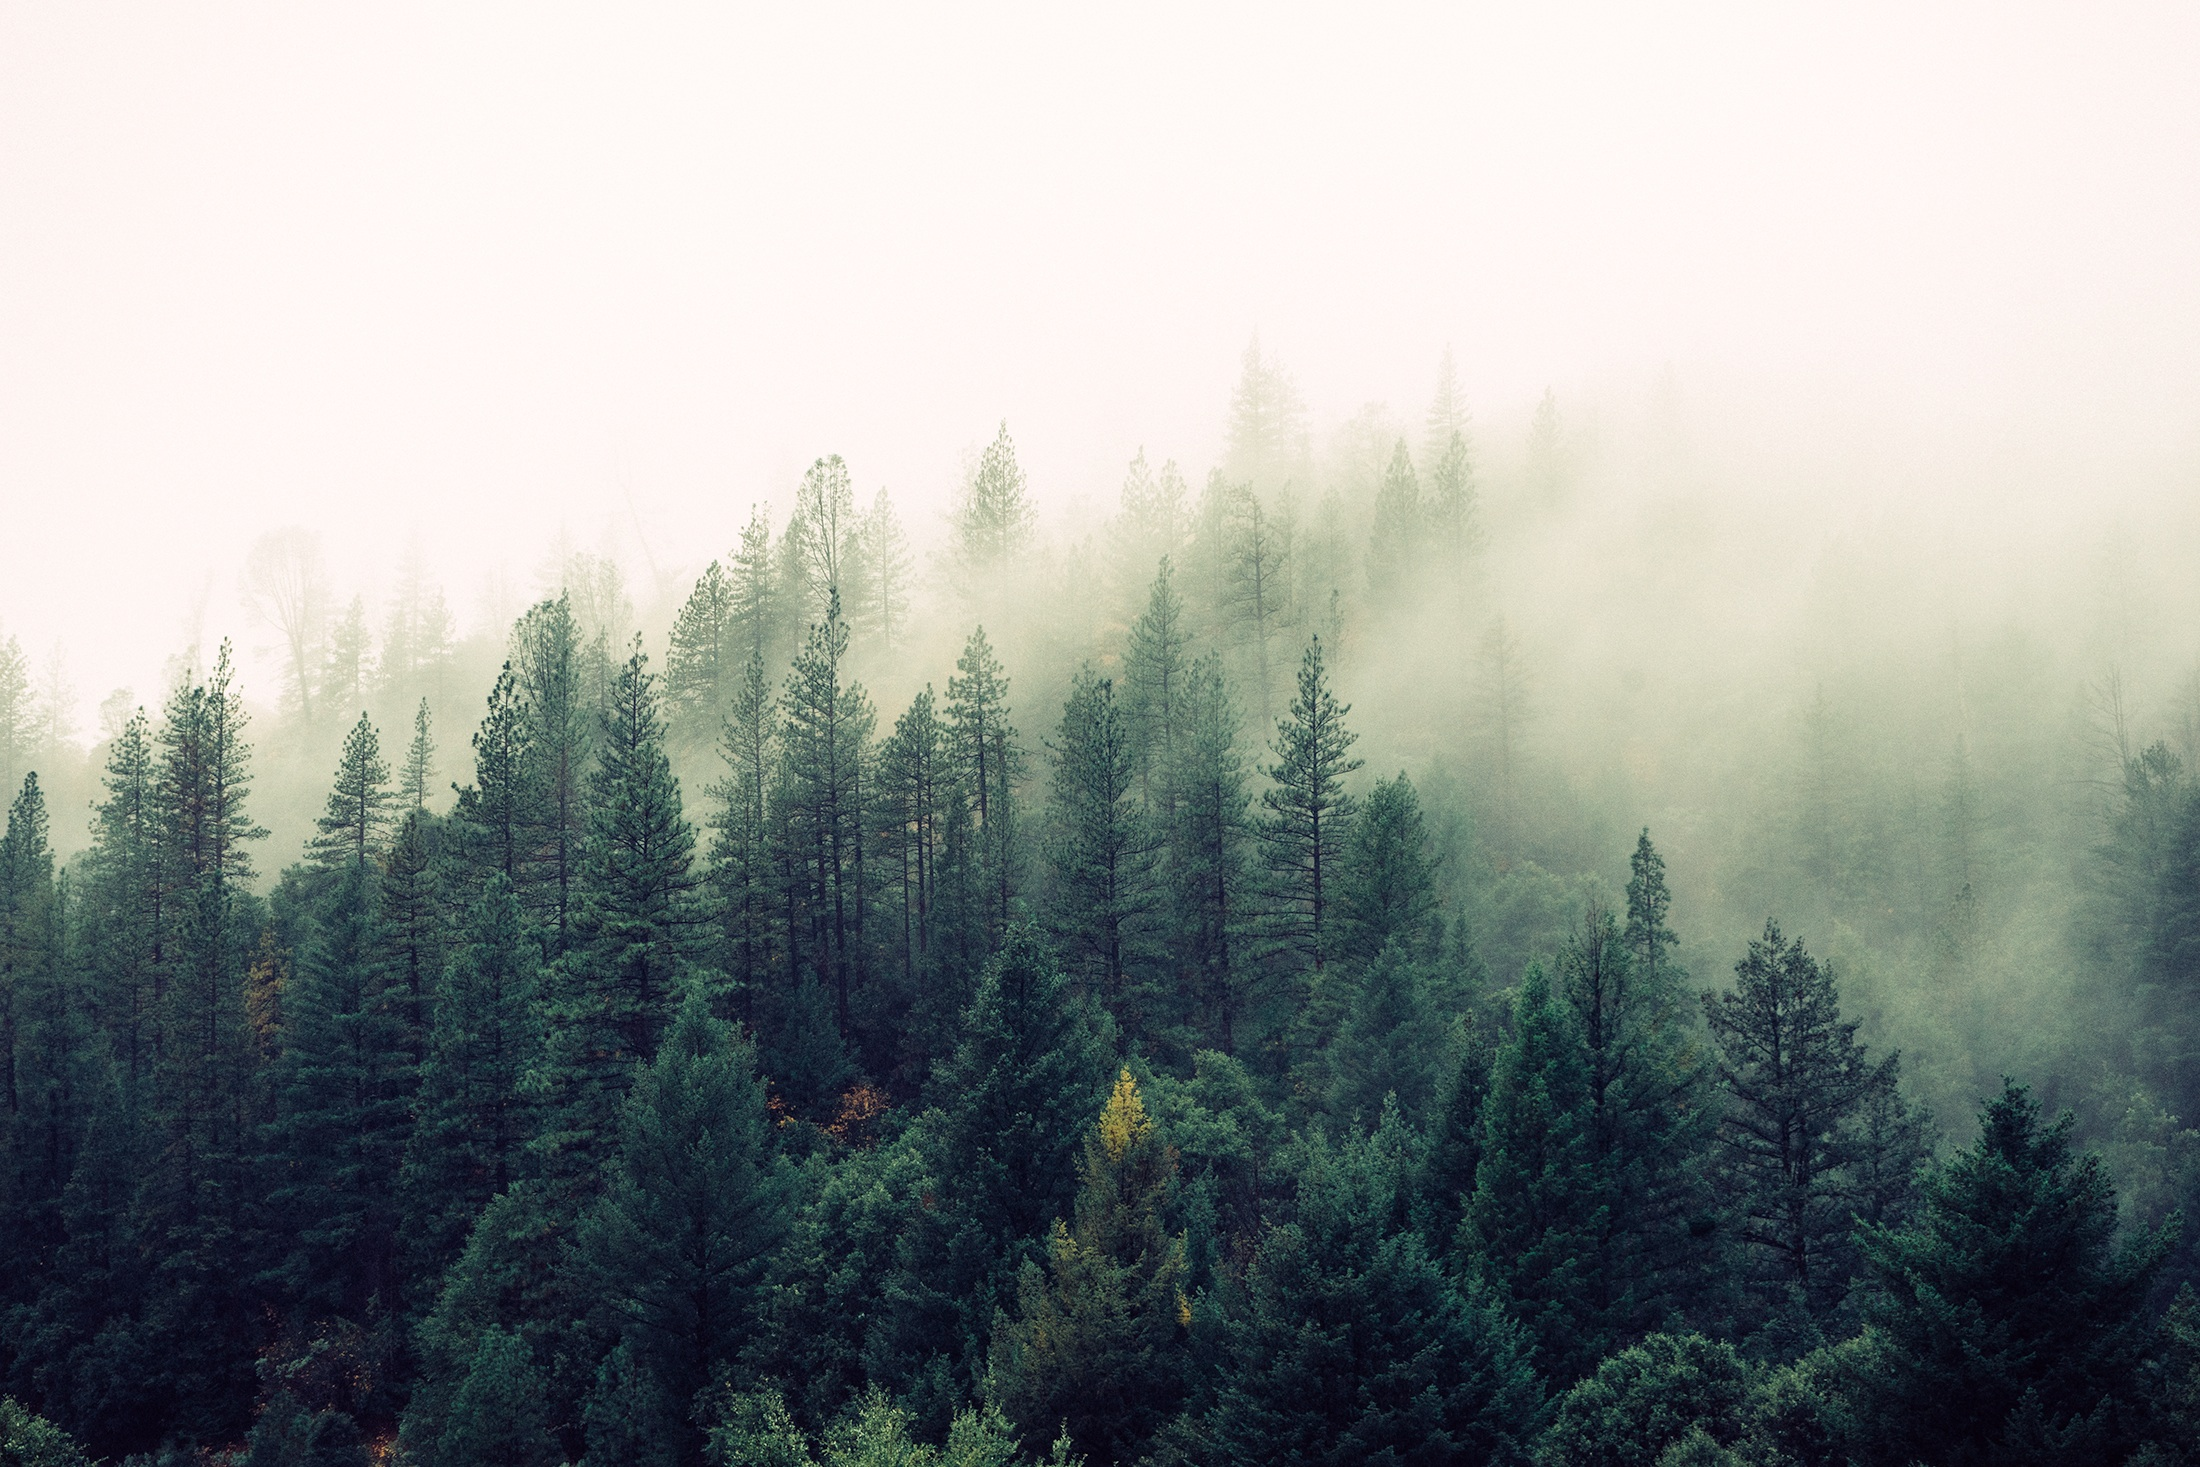 Every year, forests remove 14 percent of the country's carbon dioxide emissions.